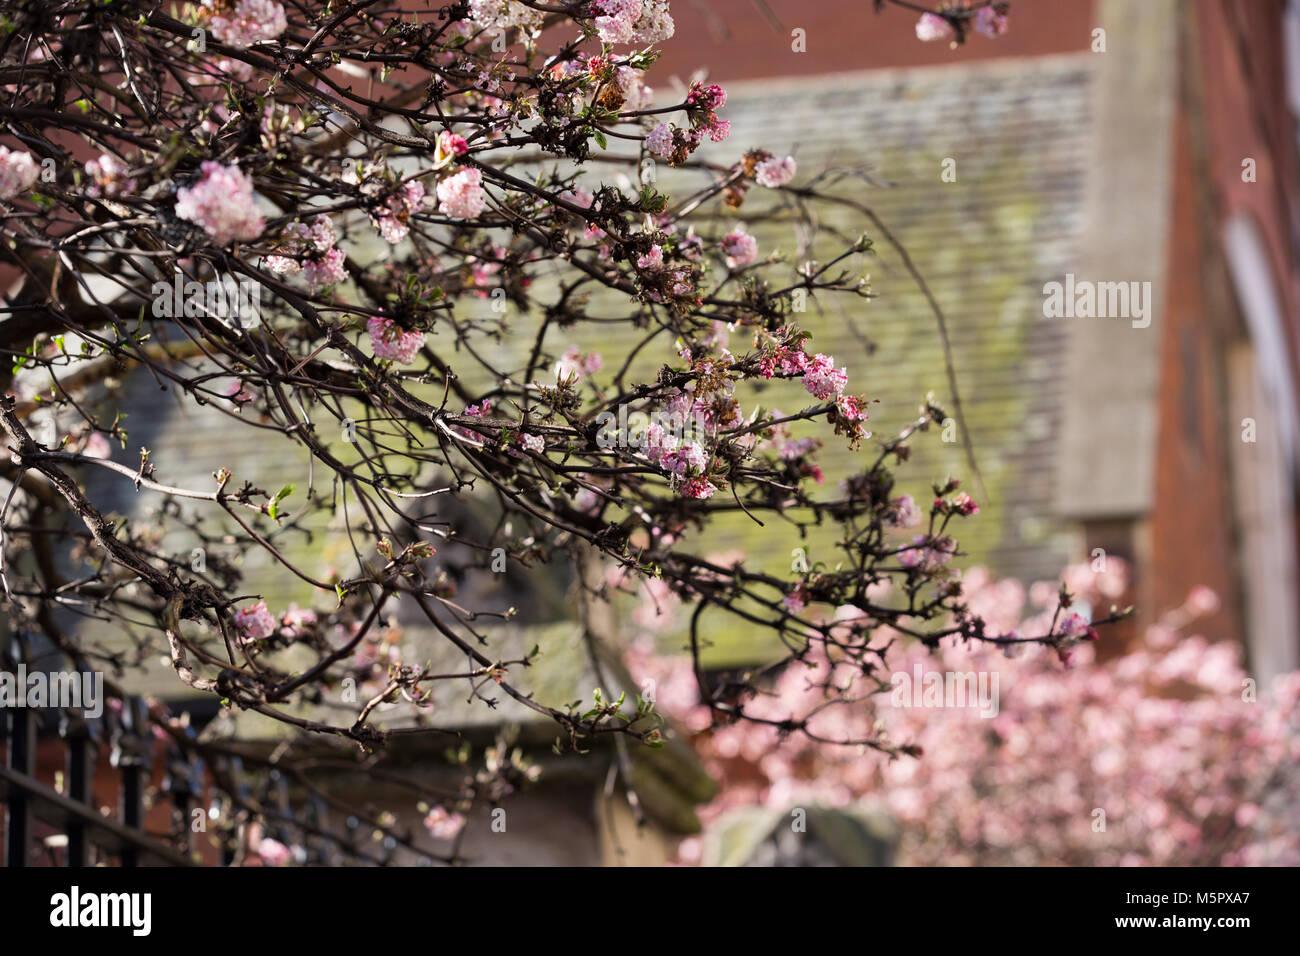 Cherry Blossom, showing early signs of Spring, Drury Lane Gardens, Covent Garden, West End, Central  London, UK - Stock Image